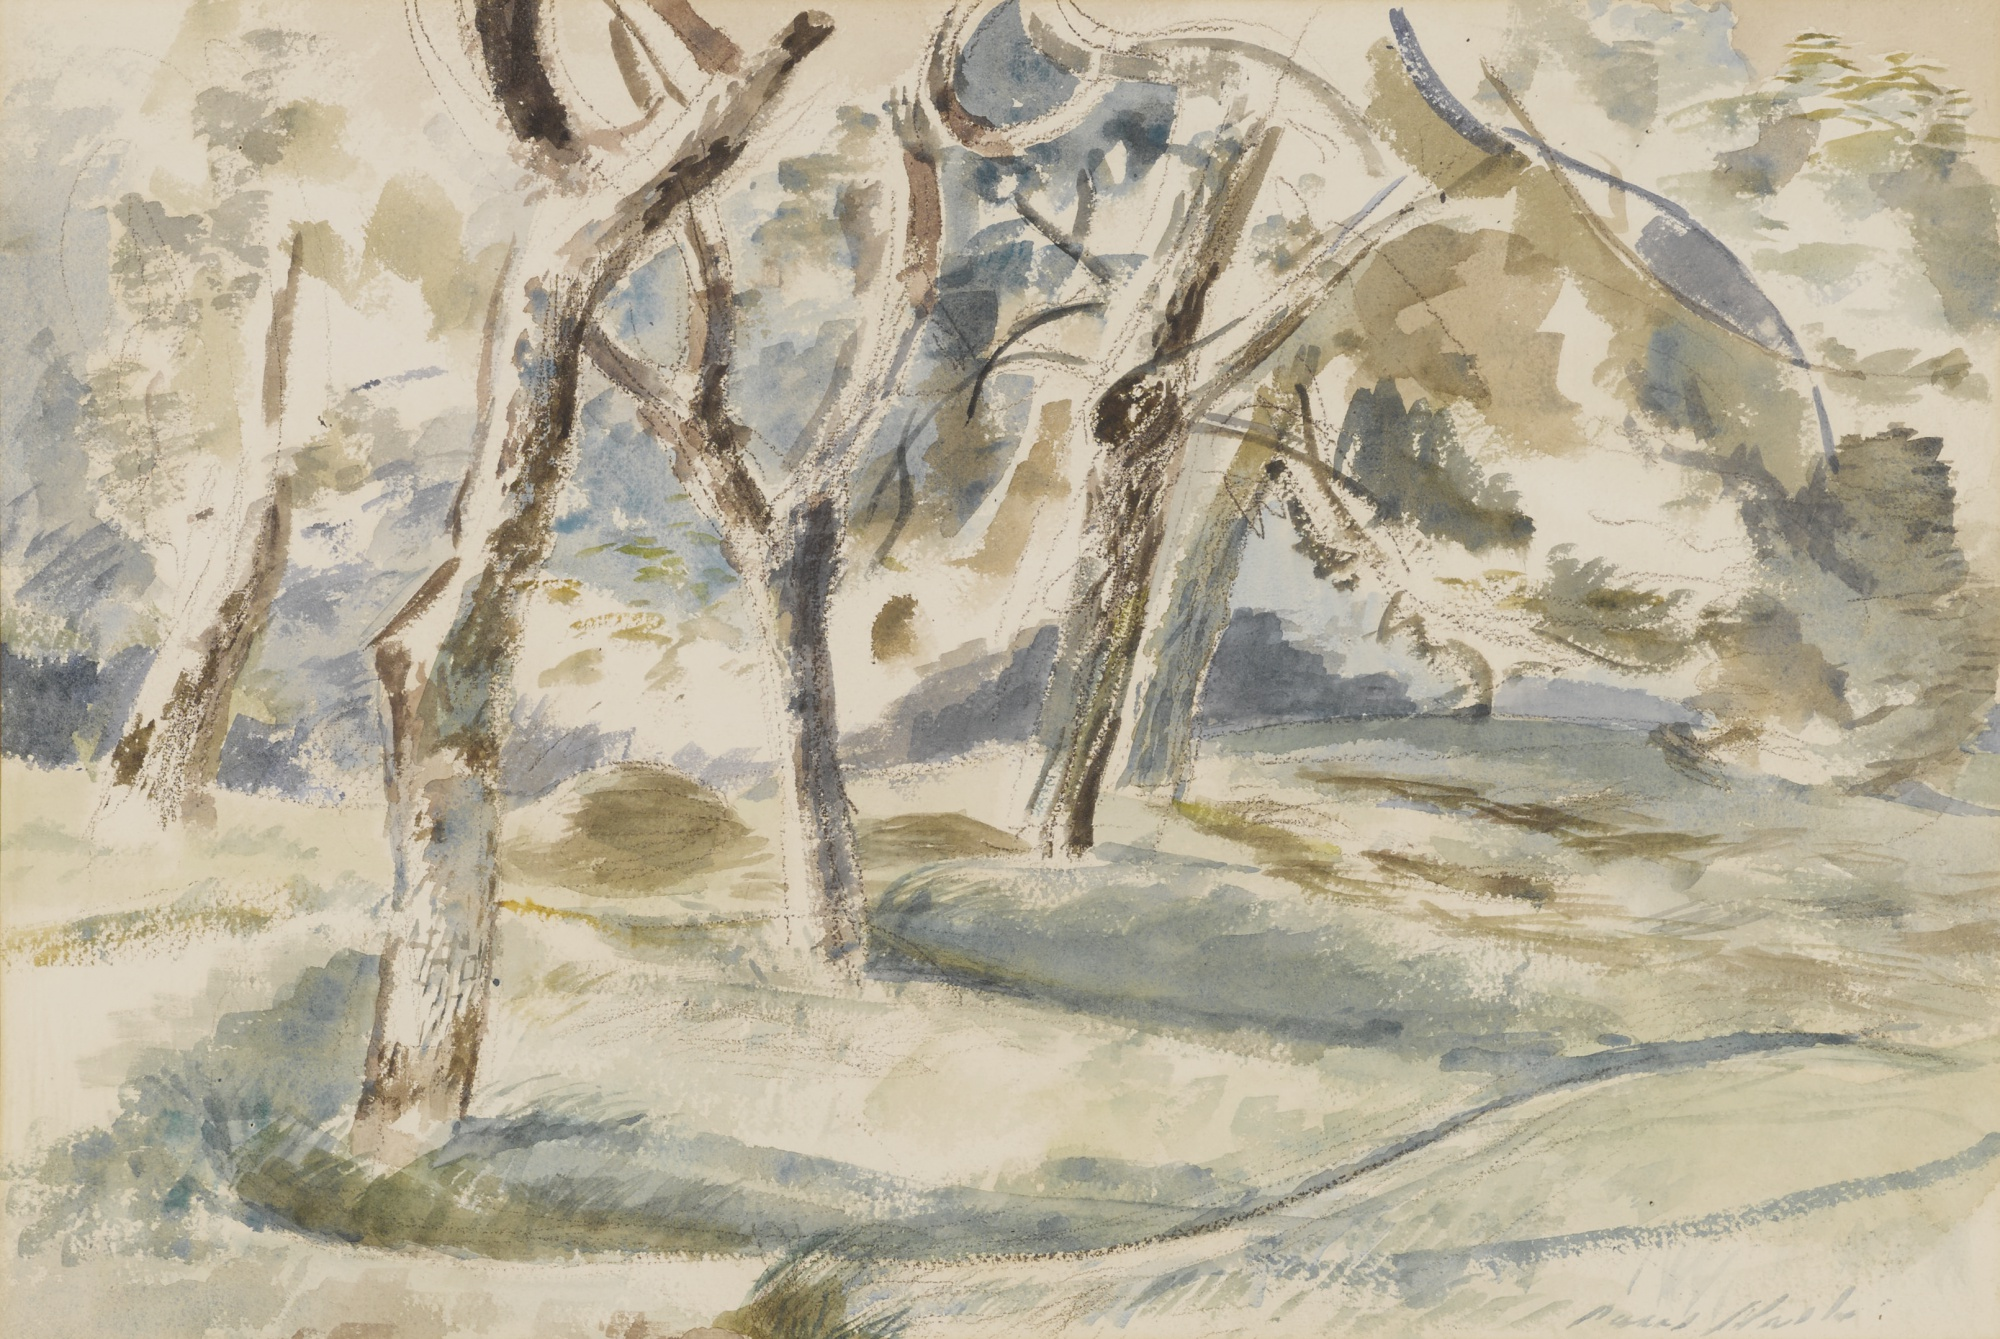 Paul Nash-Orchard At Madams, Summer Study-1941